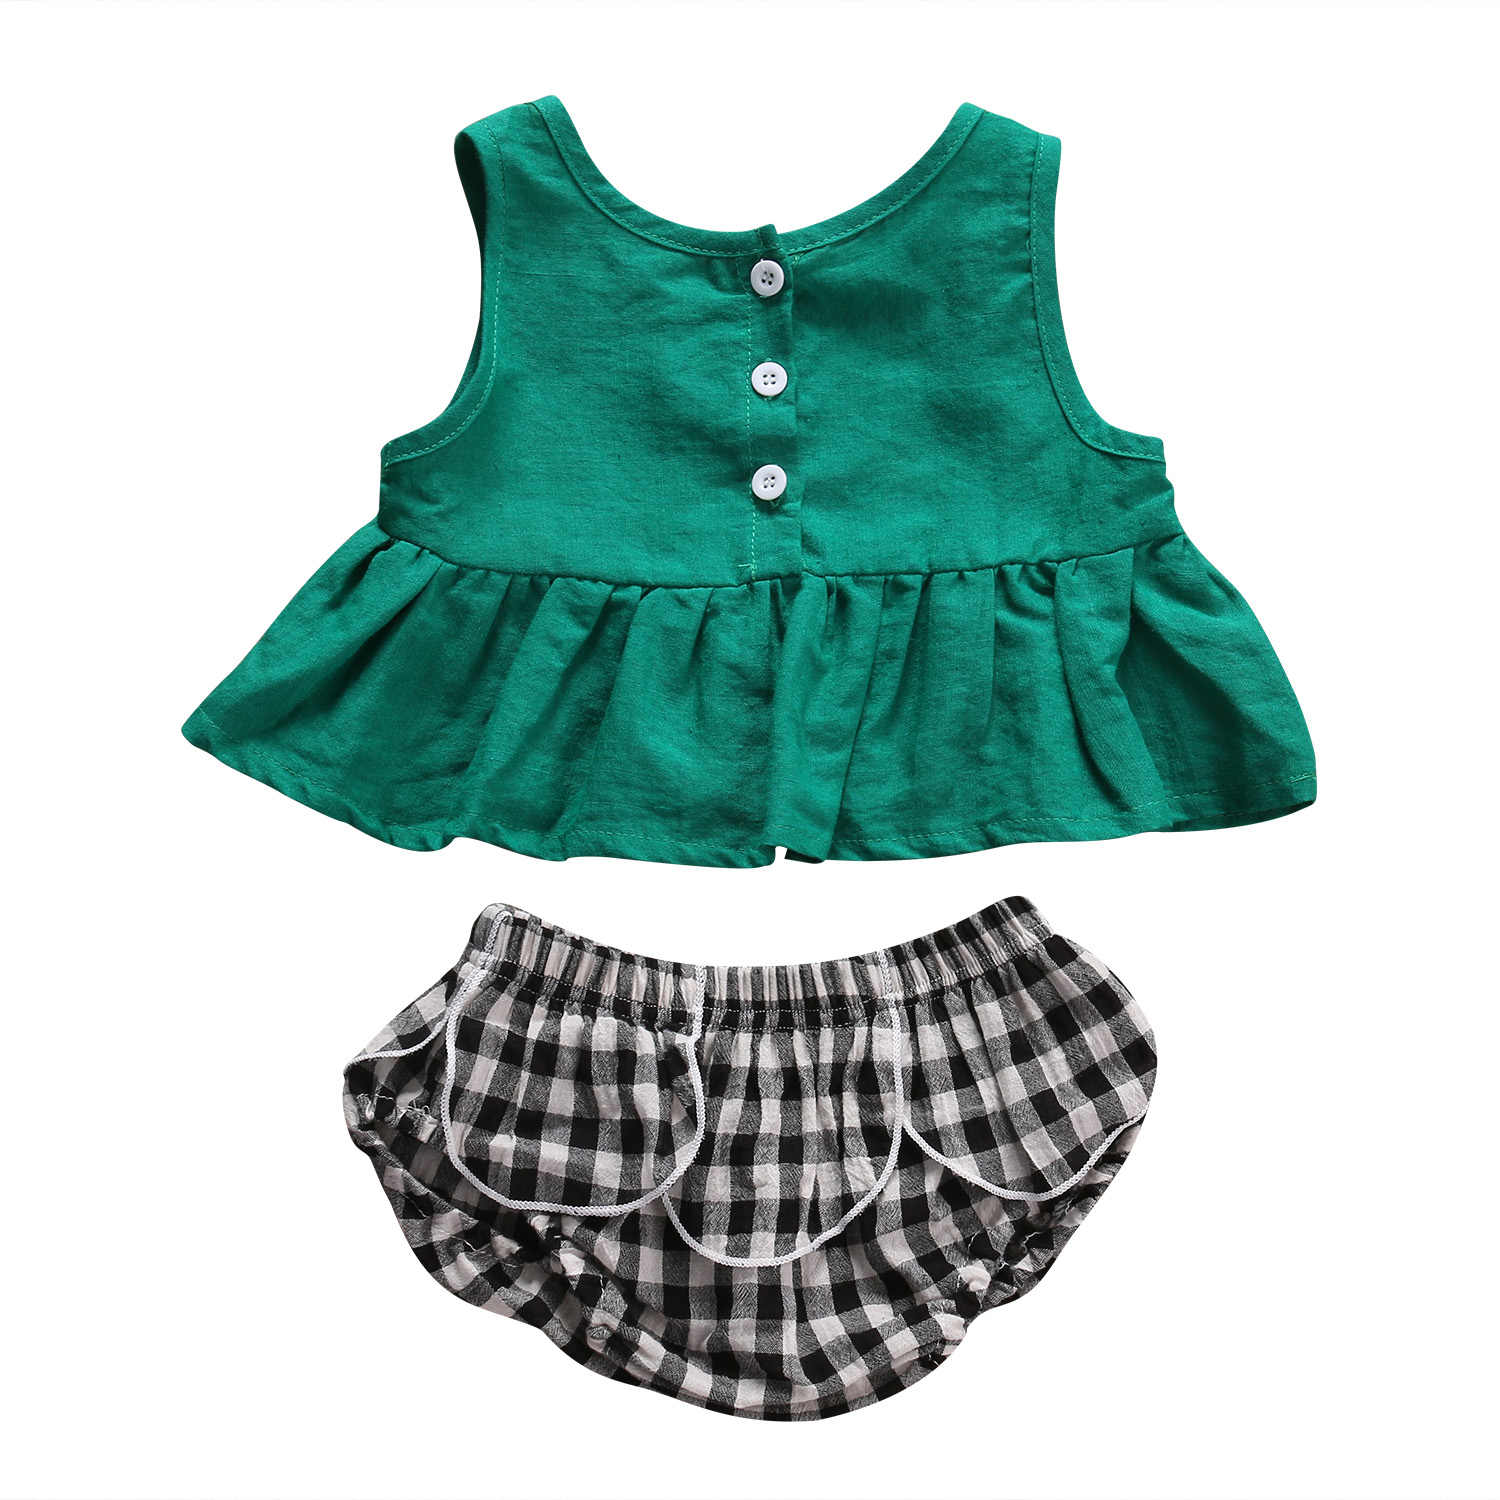 2pcs Newborn Toddler Infant Baby Girl Outfits Clothes Green Sleeveless Button T-shirt Tops+Plaids Bottom Shorts Clothes Sets